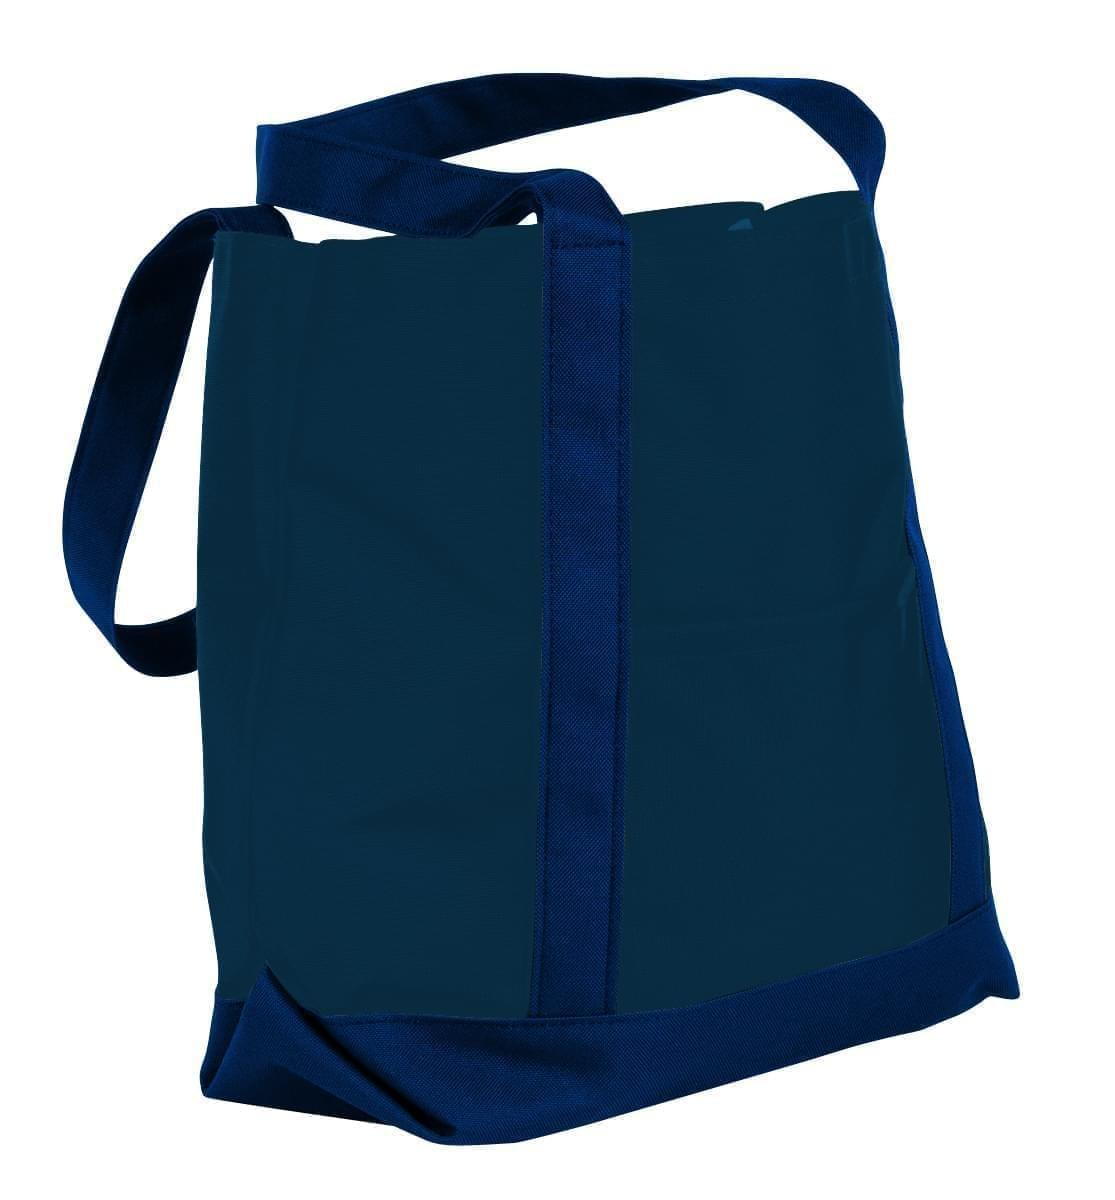 USA Made Nylon Poly Boat Tote Bags, Navy-Navy, XAACL1UAWI